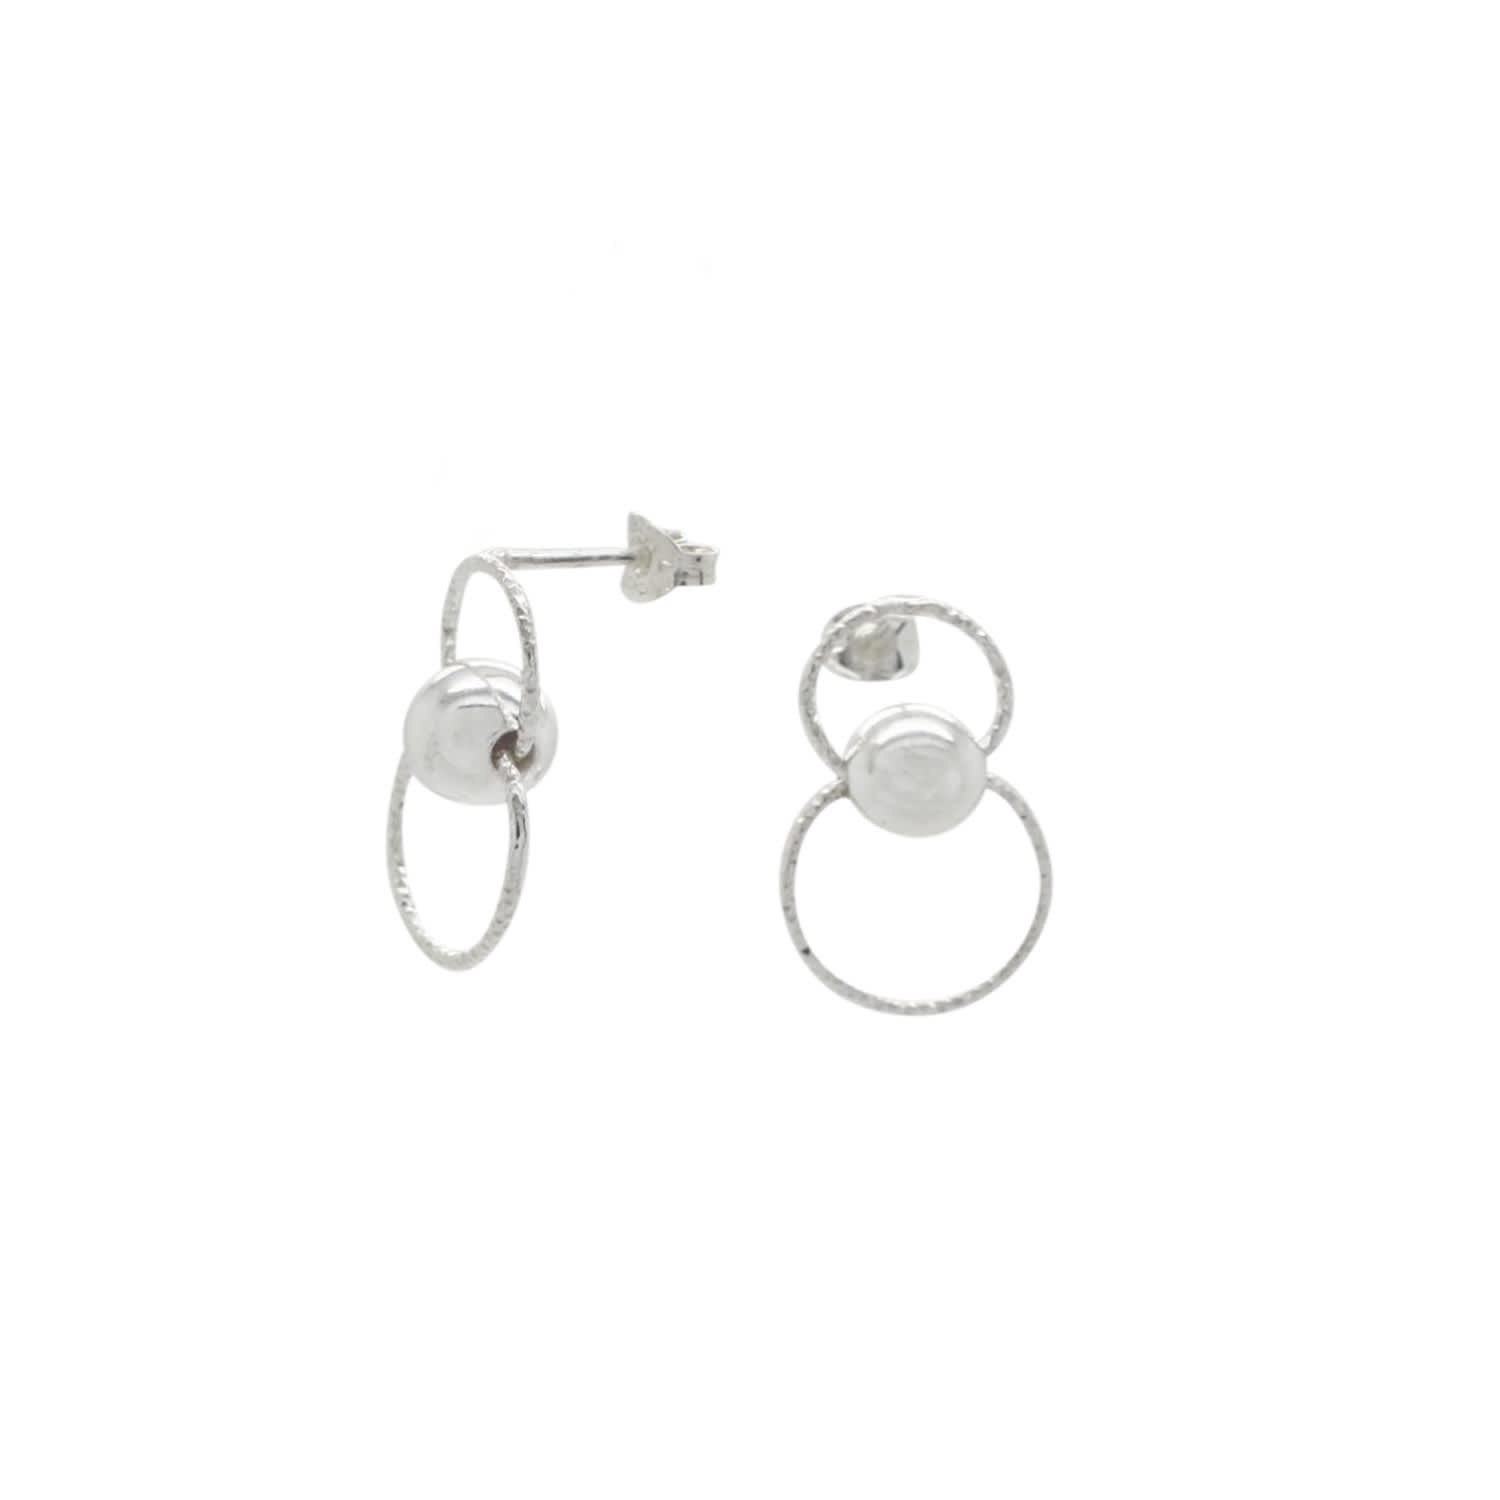 d54216282f2 Large Circle Linked Stud Earrings Sterling Silver by Lucy Ashton Jewellery